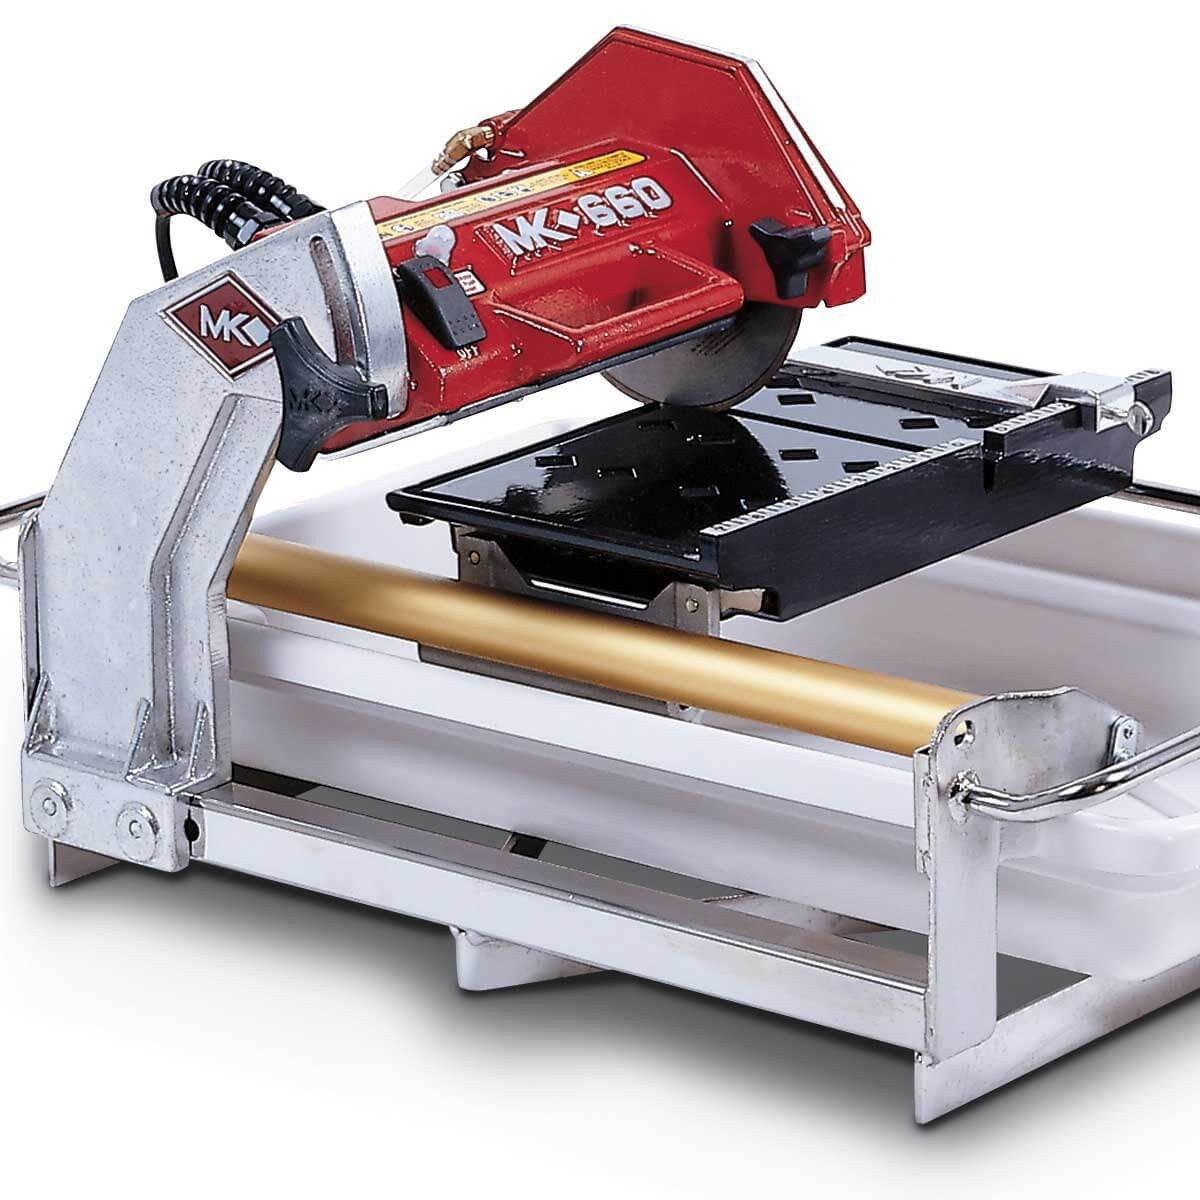 Mk Diamond Mk 660 Wet Tile Saw Contractors Direct